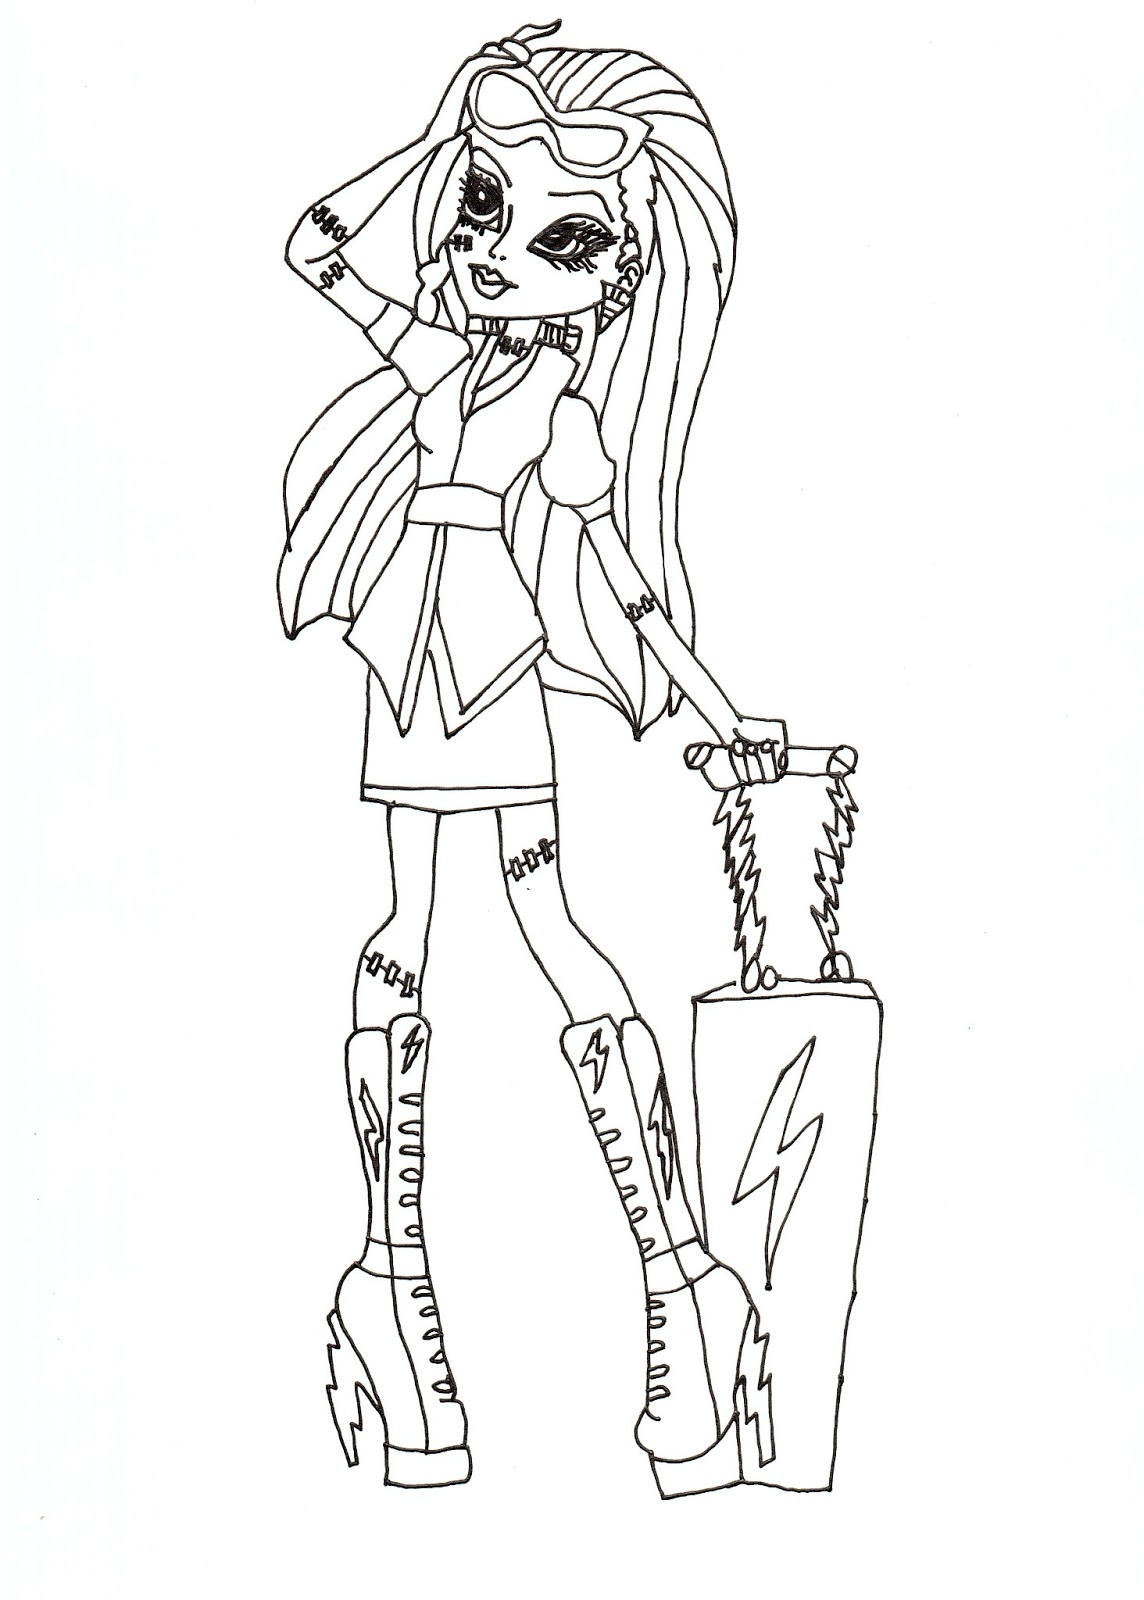 Exceptional image within printable monster high coloring pages